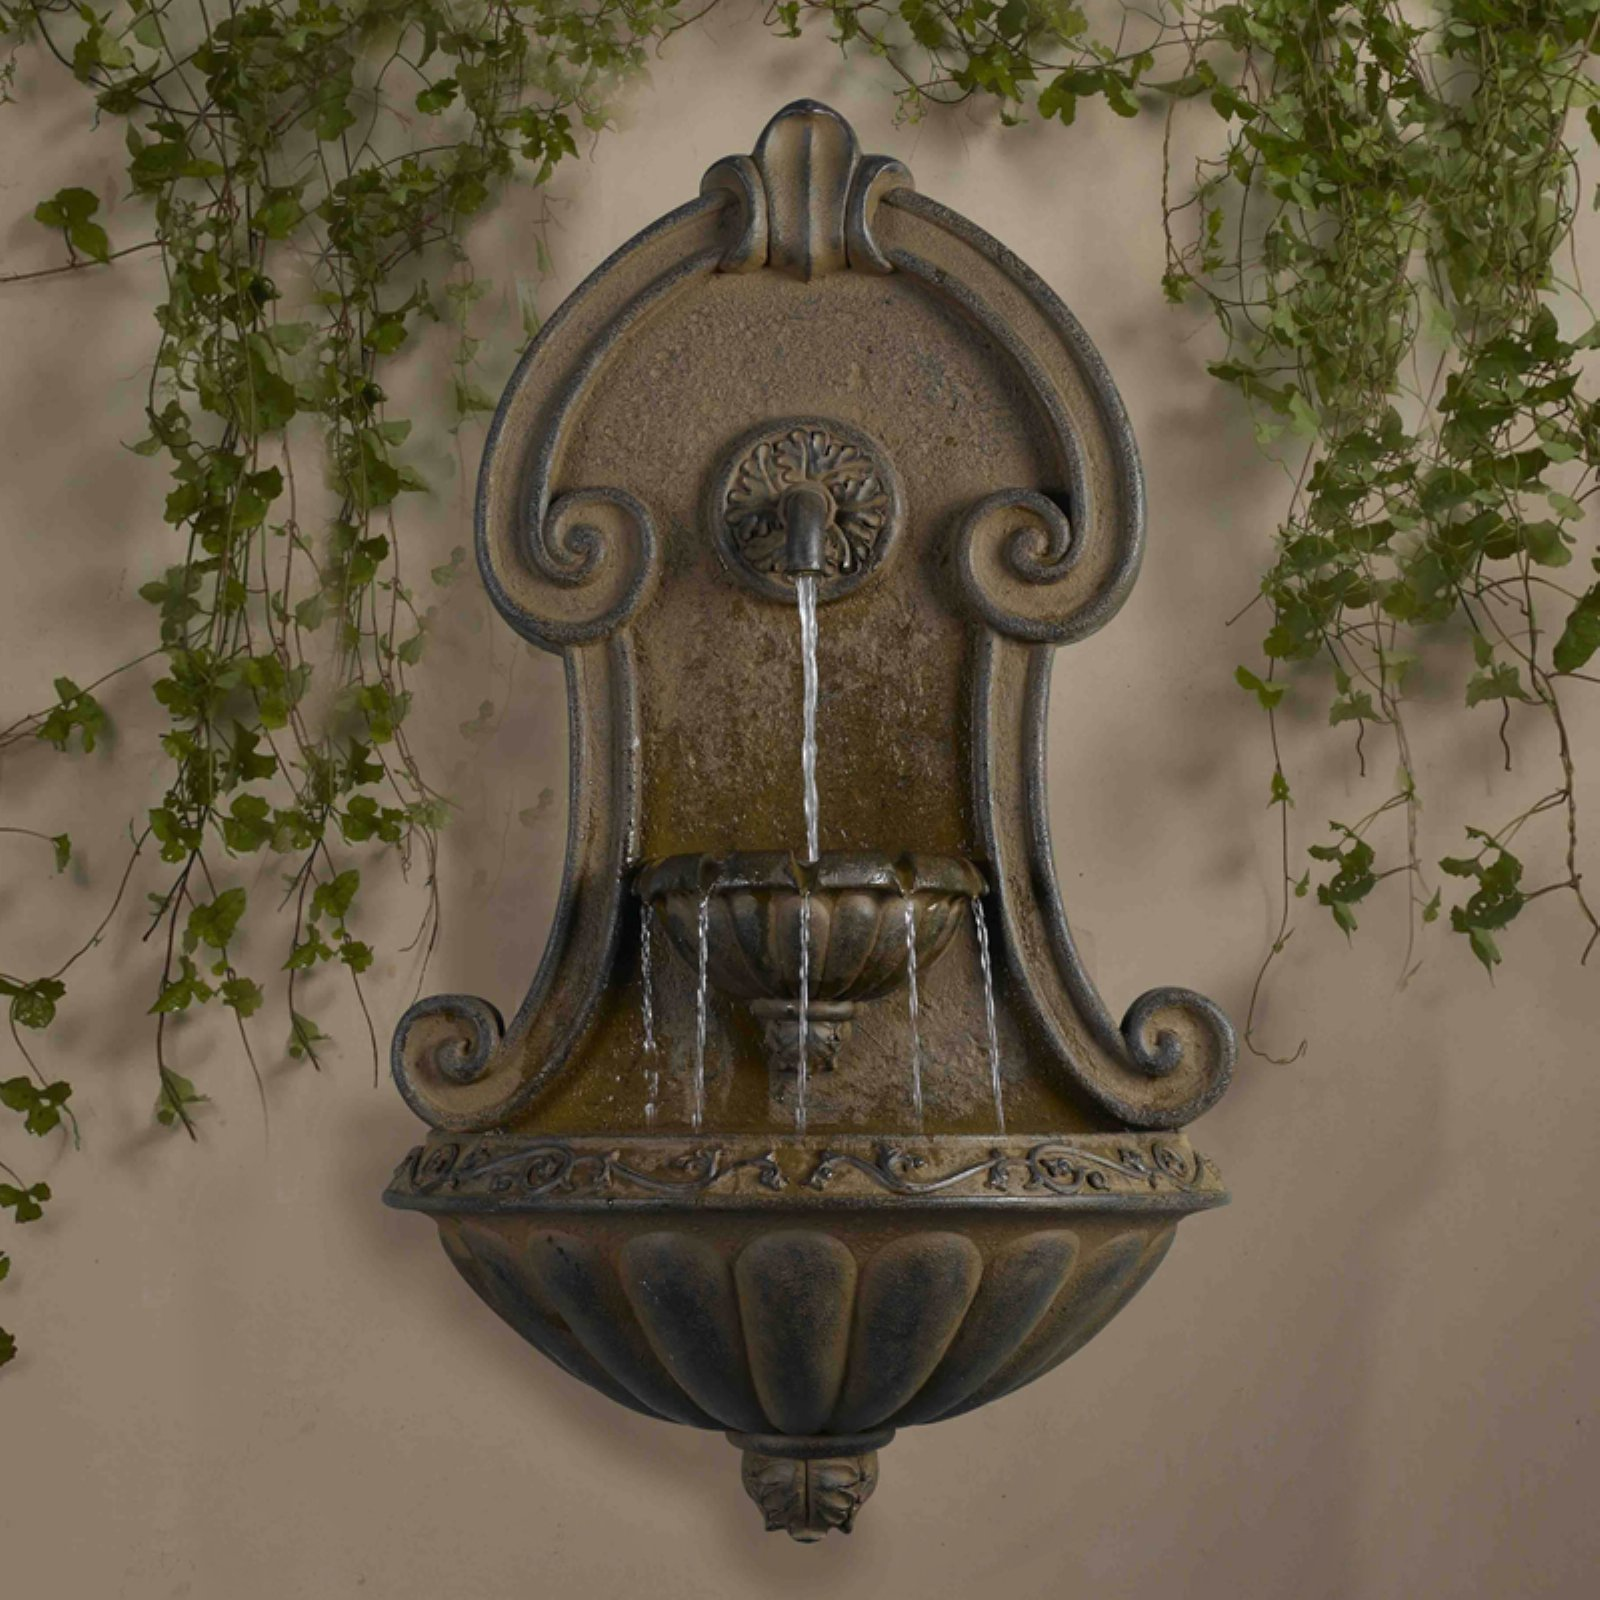 Jeco Muro Elegante Copper Finish Wall Fountain